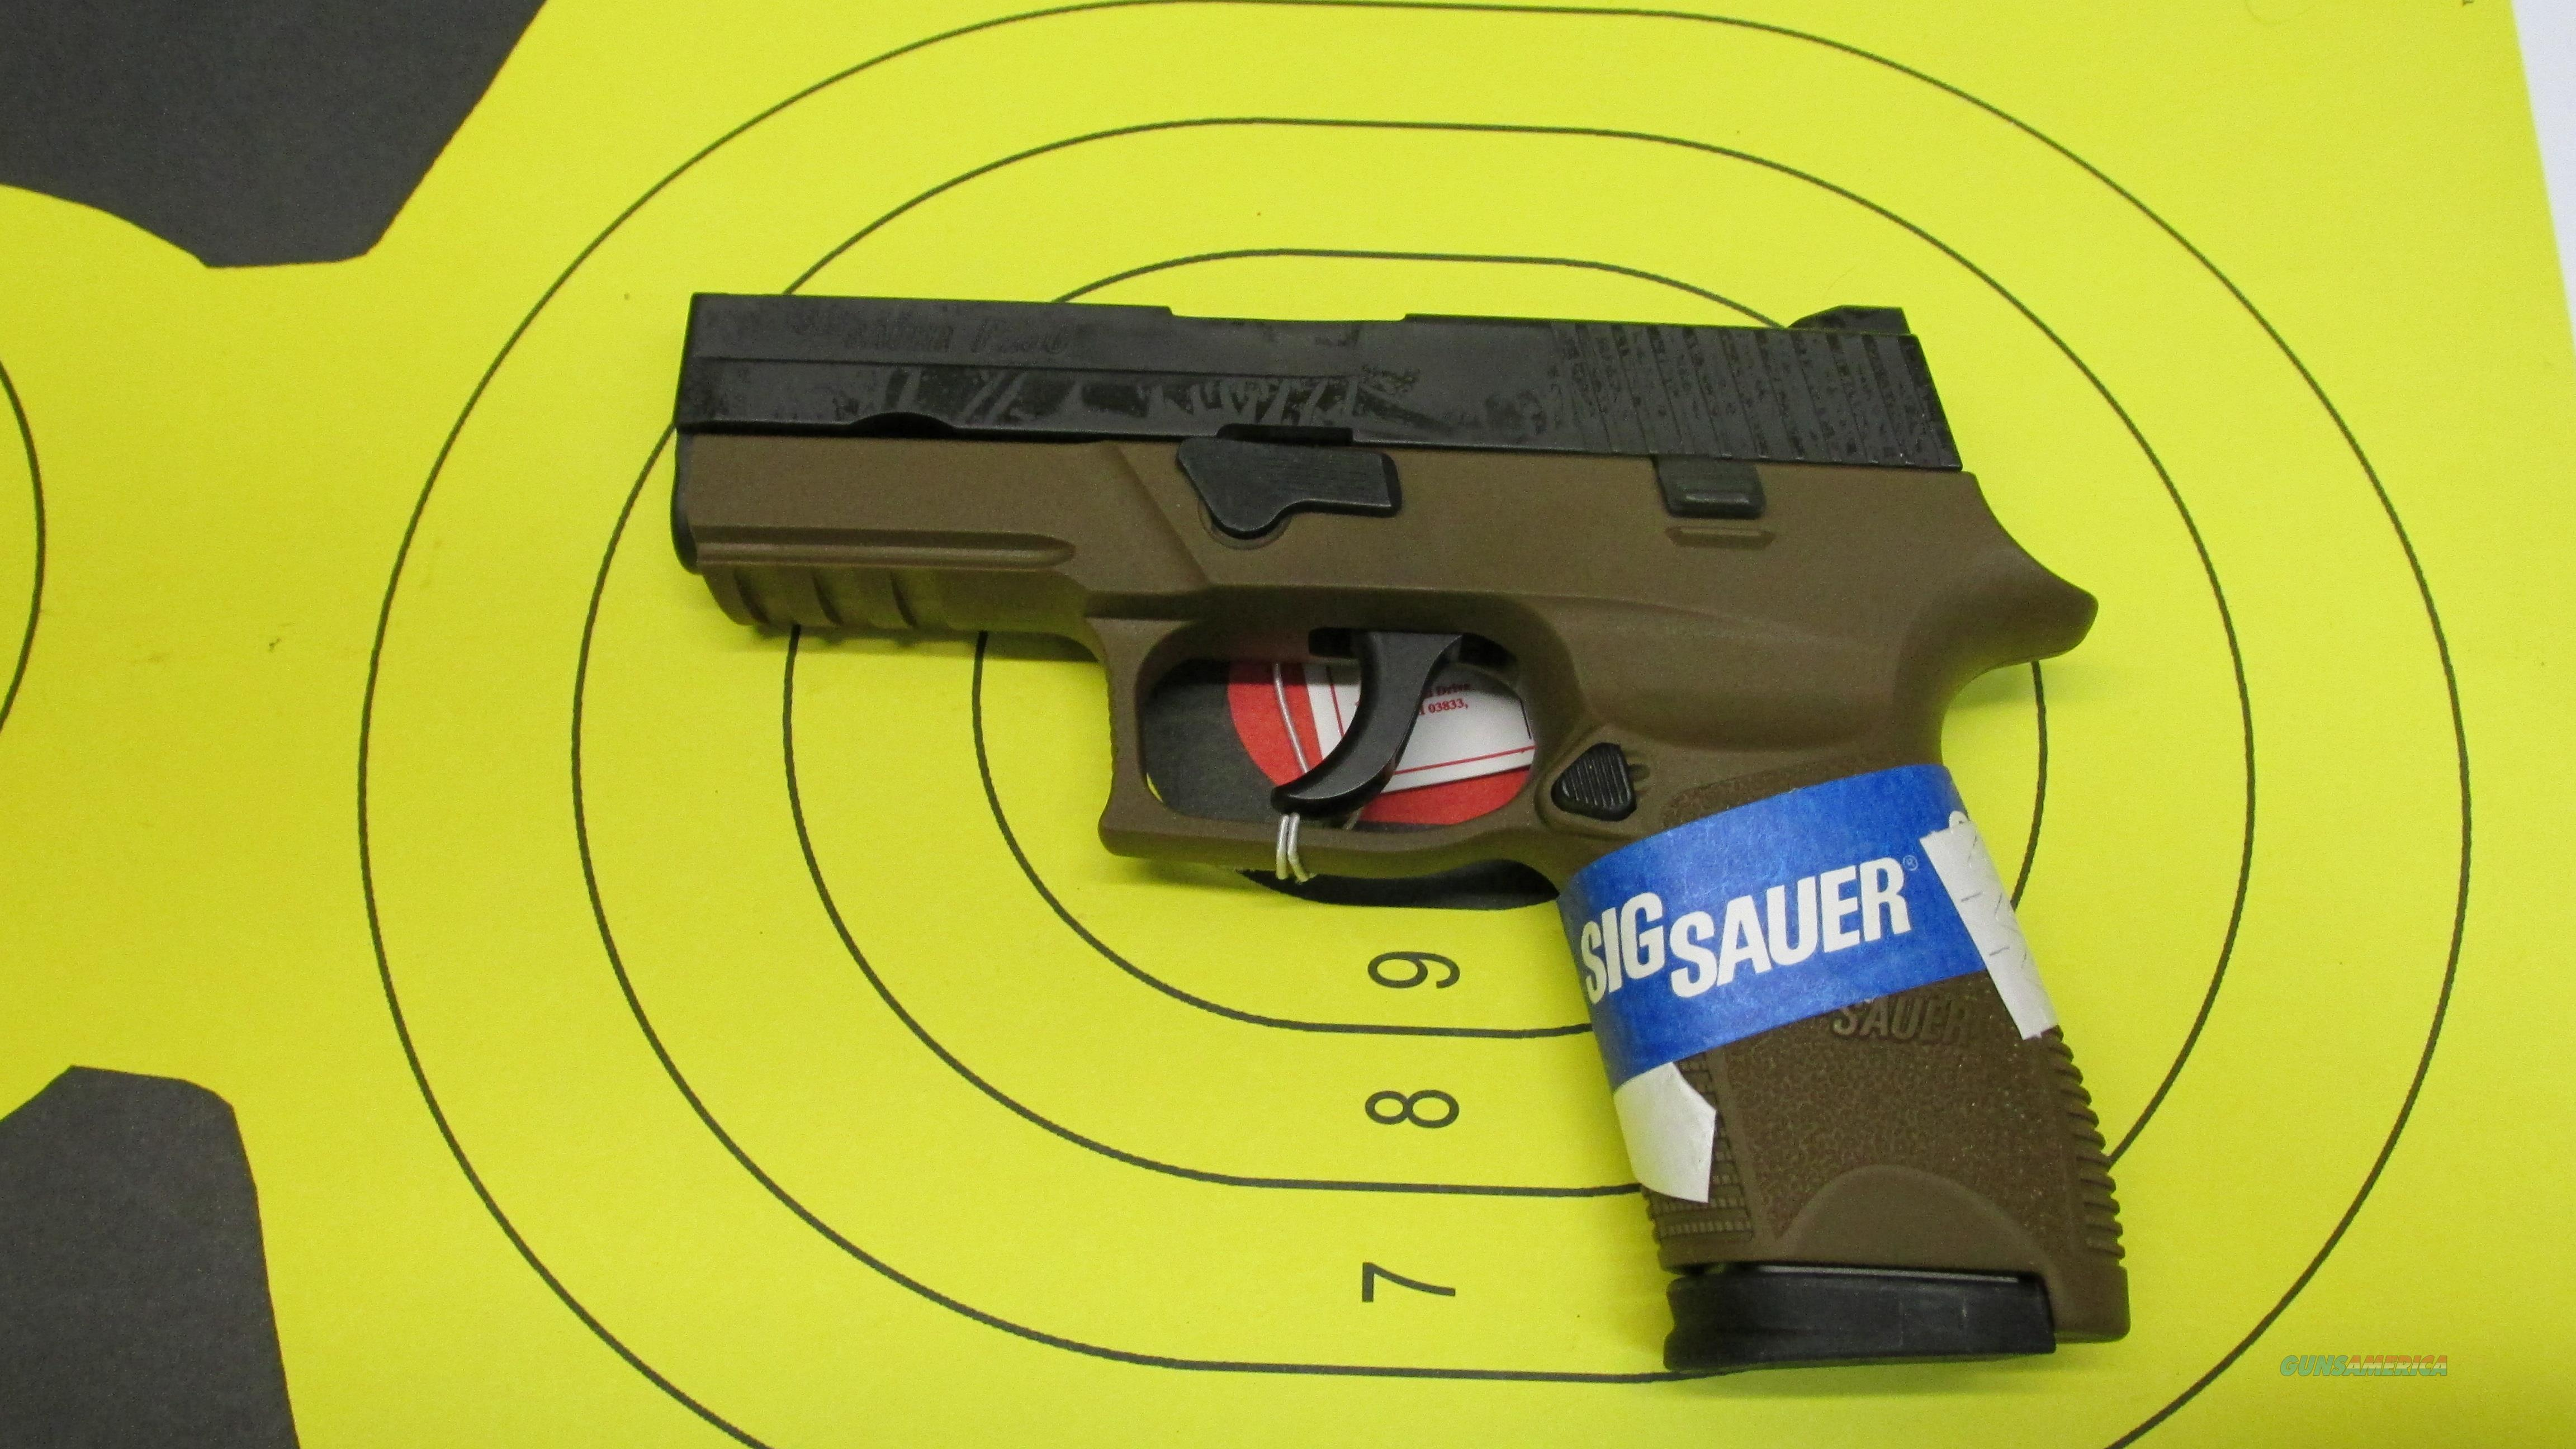 "SIG SAUER P250 COMPACT FDE 9MM PISTOL 15 ROUND MAG WITH 4"" BARREL AND NIGHT SIGHTS  Guns > Pistols > Sig - Sauer/Sigarms Pistols > P250"